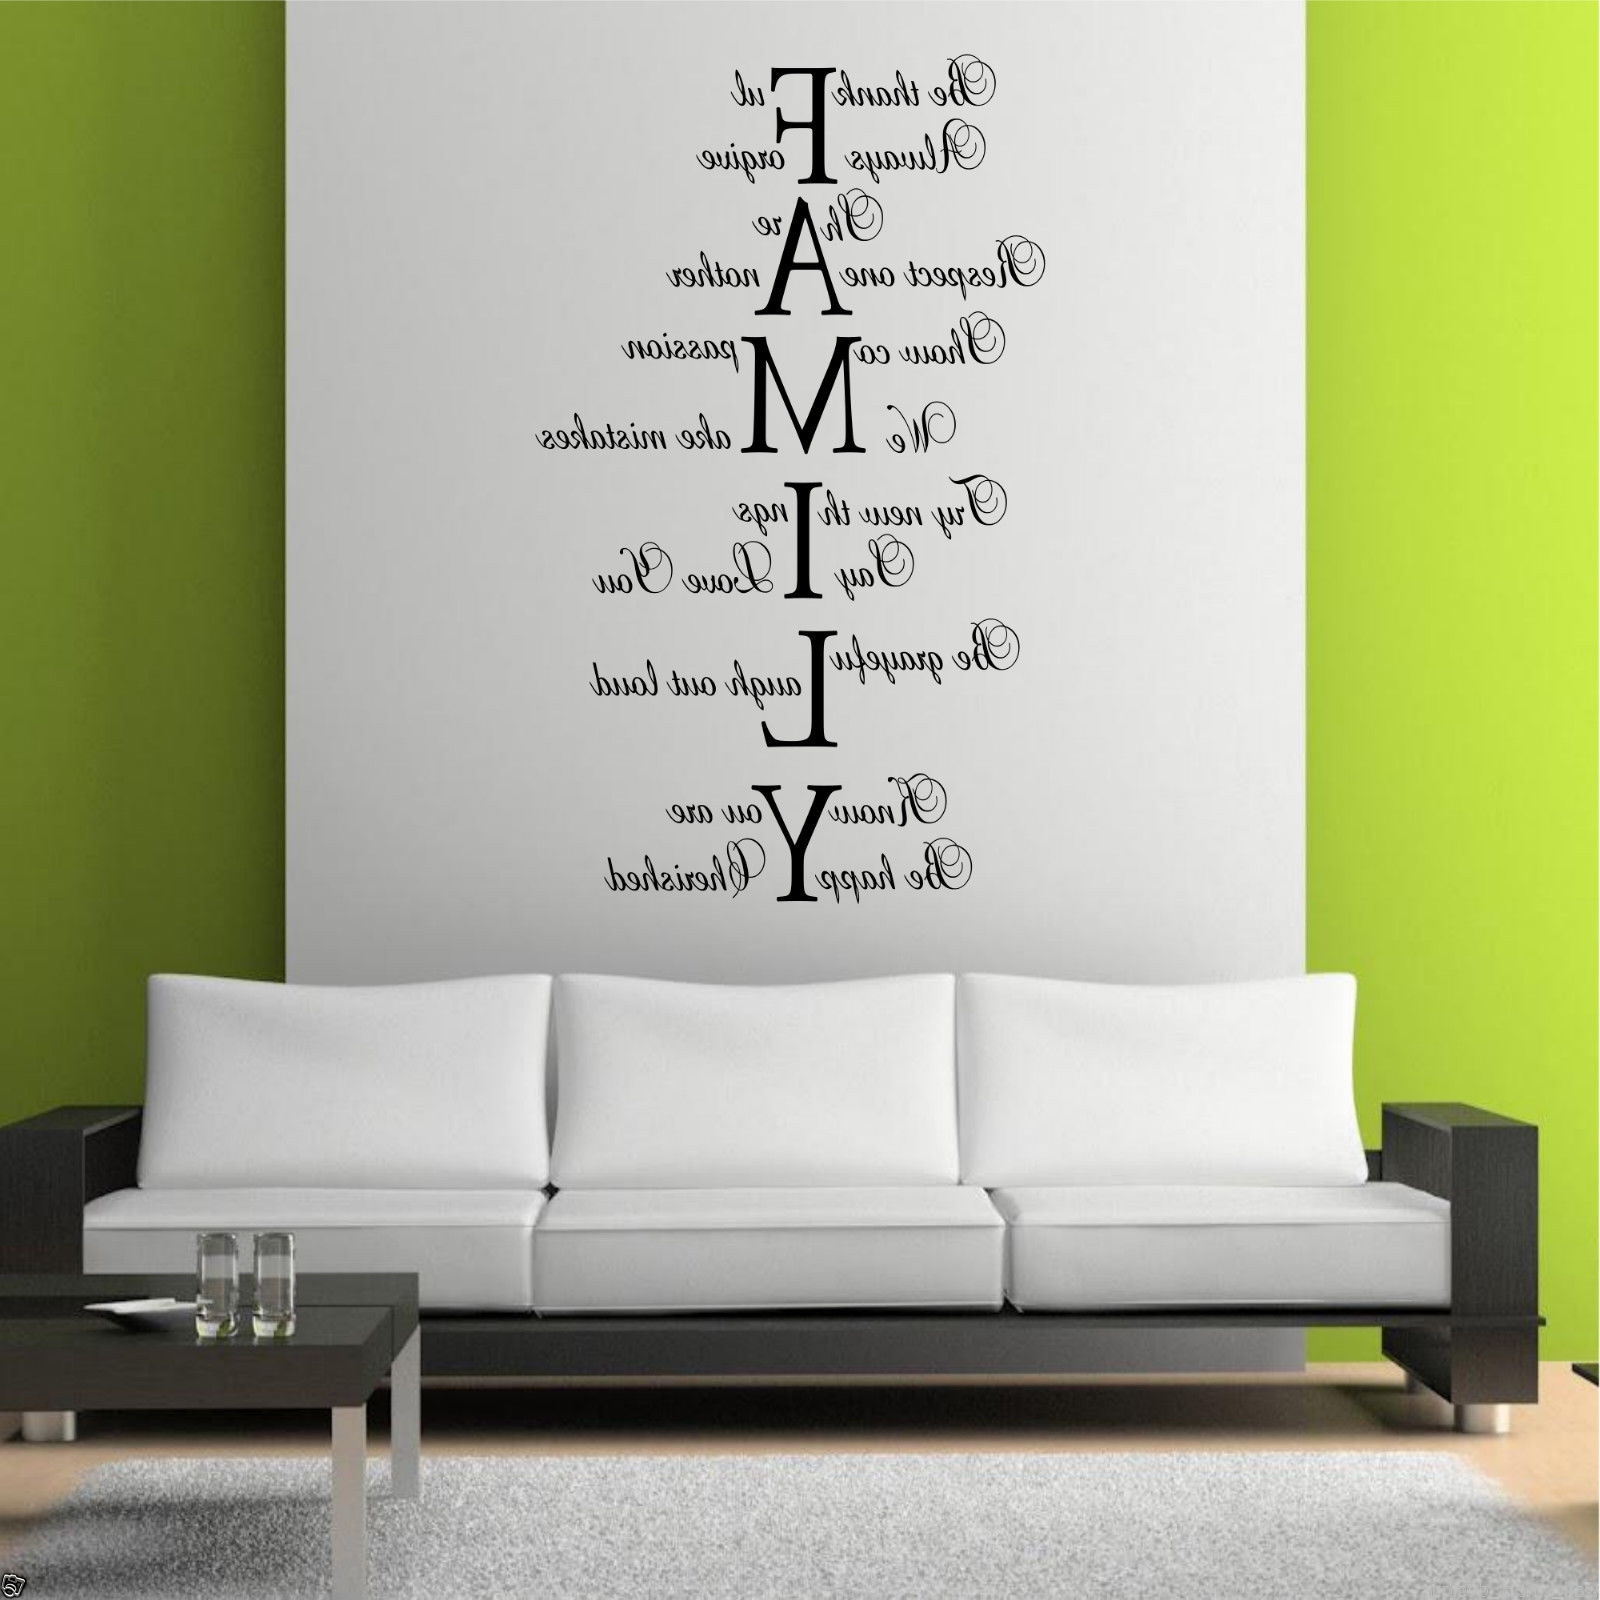 Trendy Family Love Life Wall Art Sticker Quote Room Decal Mural Transfer Pertaining To Family Wall Art (Gallery 2 of 15)